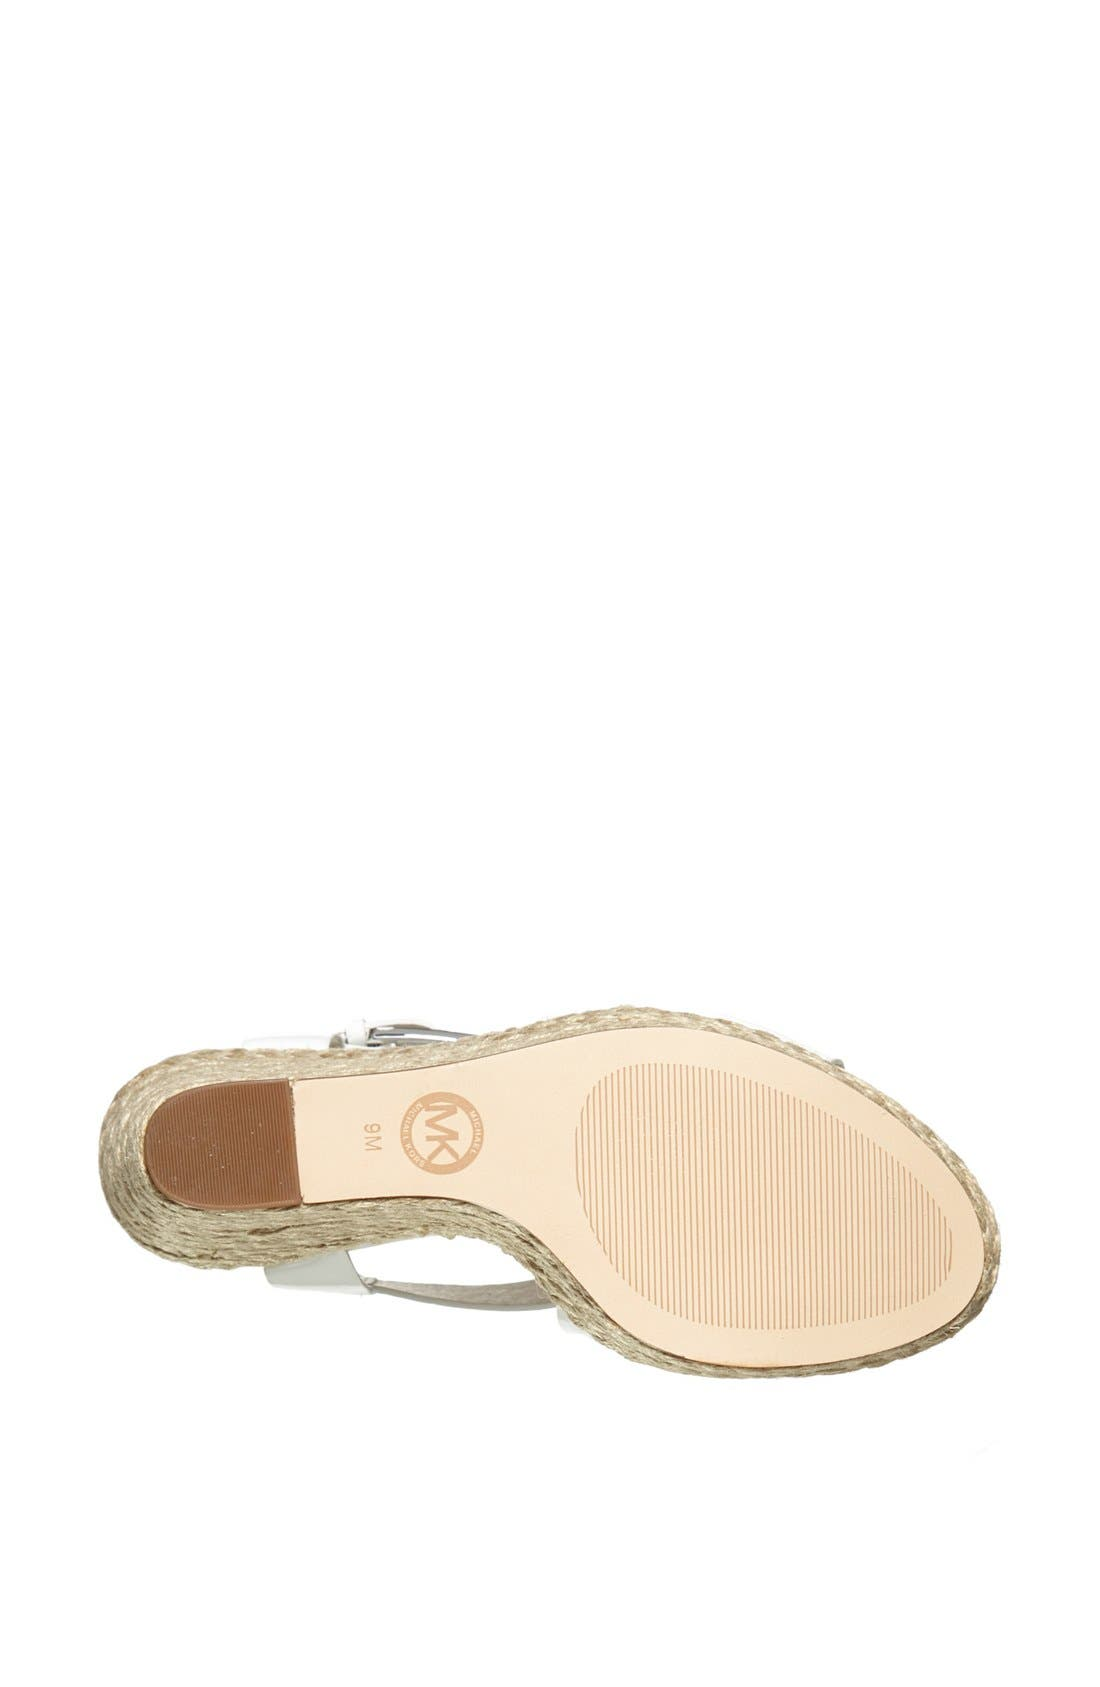 'Giovanna' Wedge Sandal,                             Alternate thumbnail 3, color,                             101